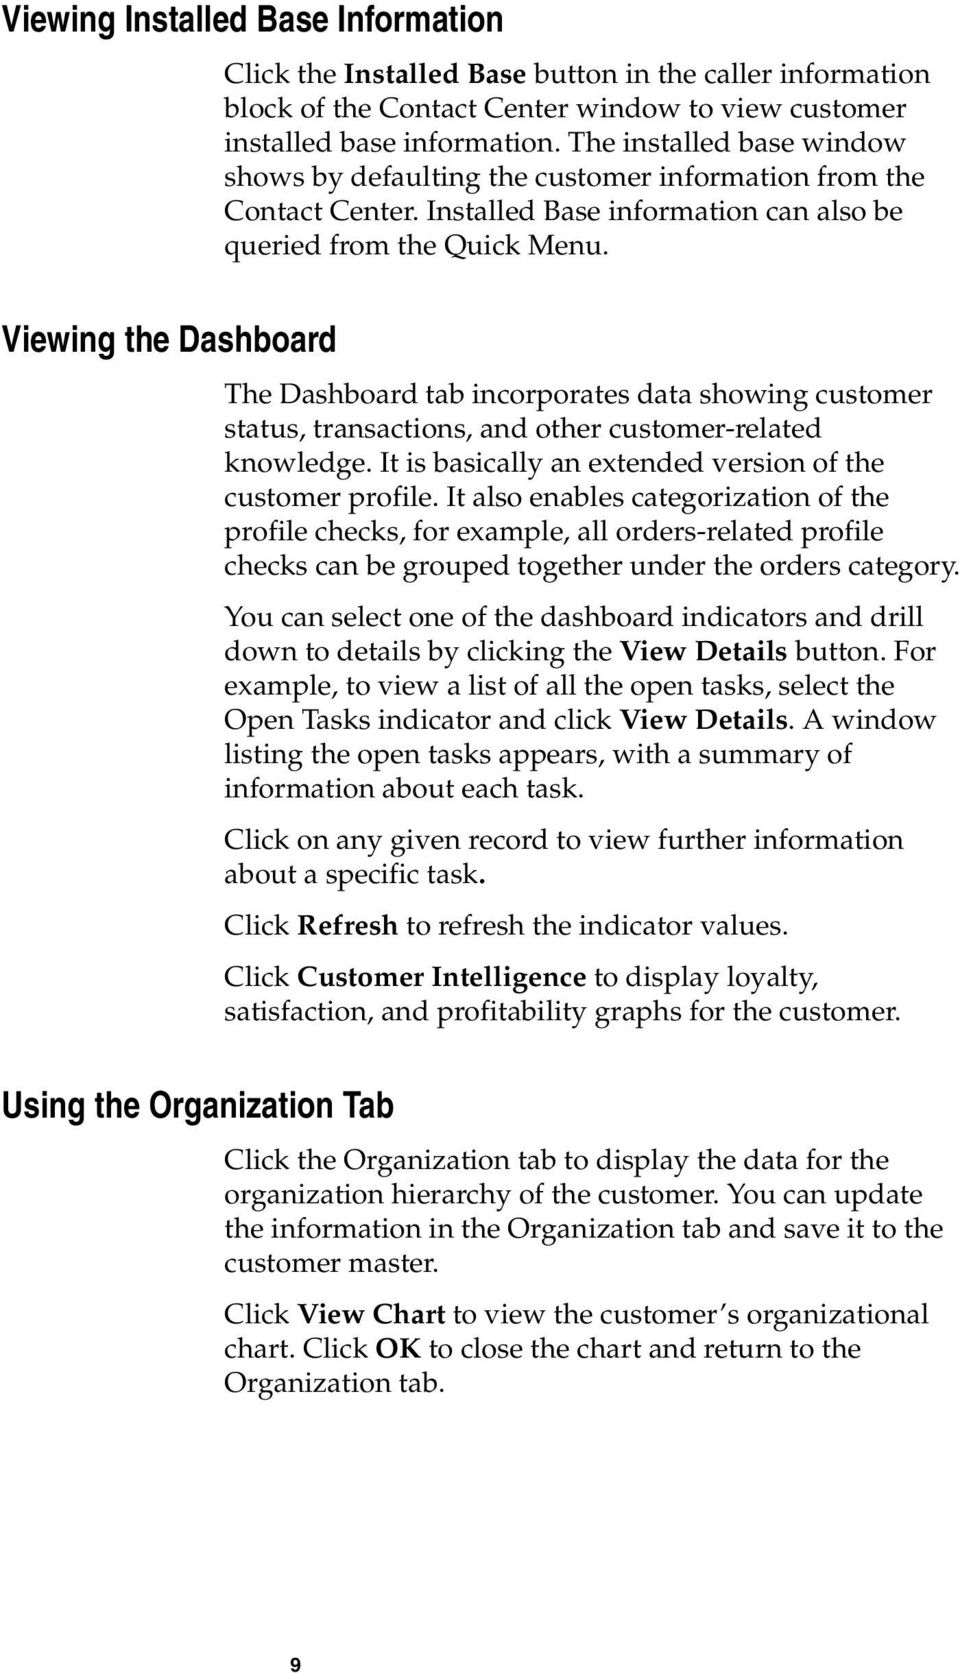 The Dashboard tab incorporates data showing customer status, transactions, and other customer-related knowledge. It is basically an extended version of the customer profile.